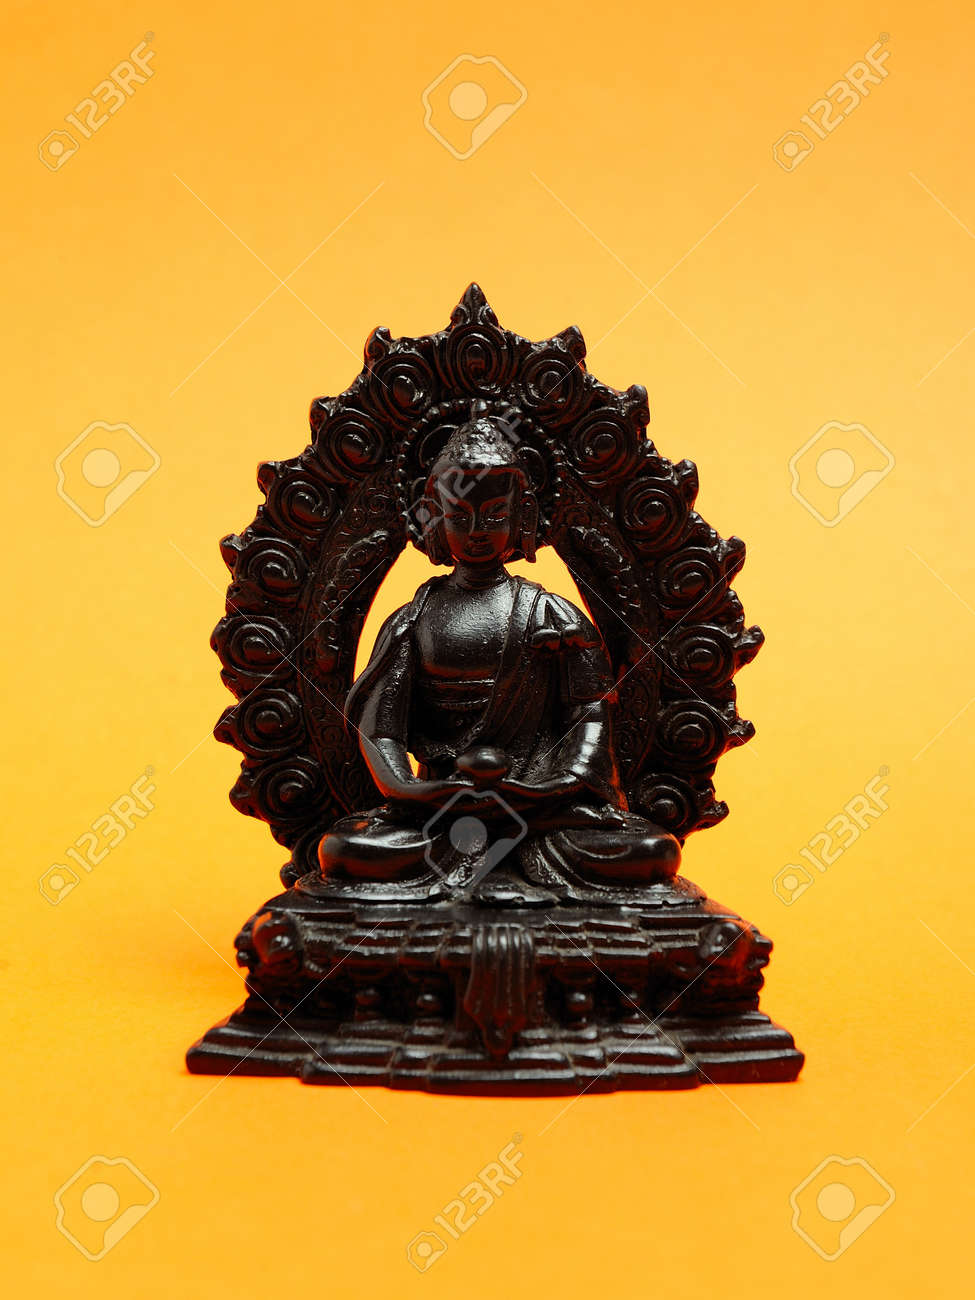 Statue of ancient meditating monk made of wood Stock Photo - 11079815